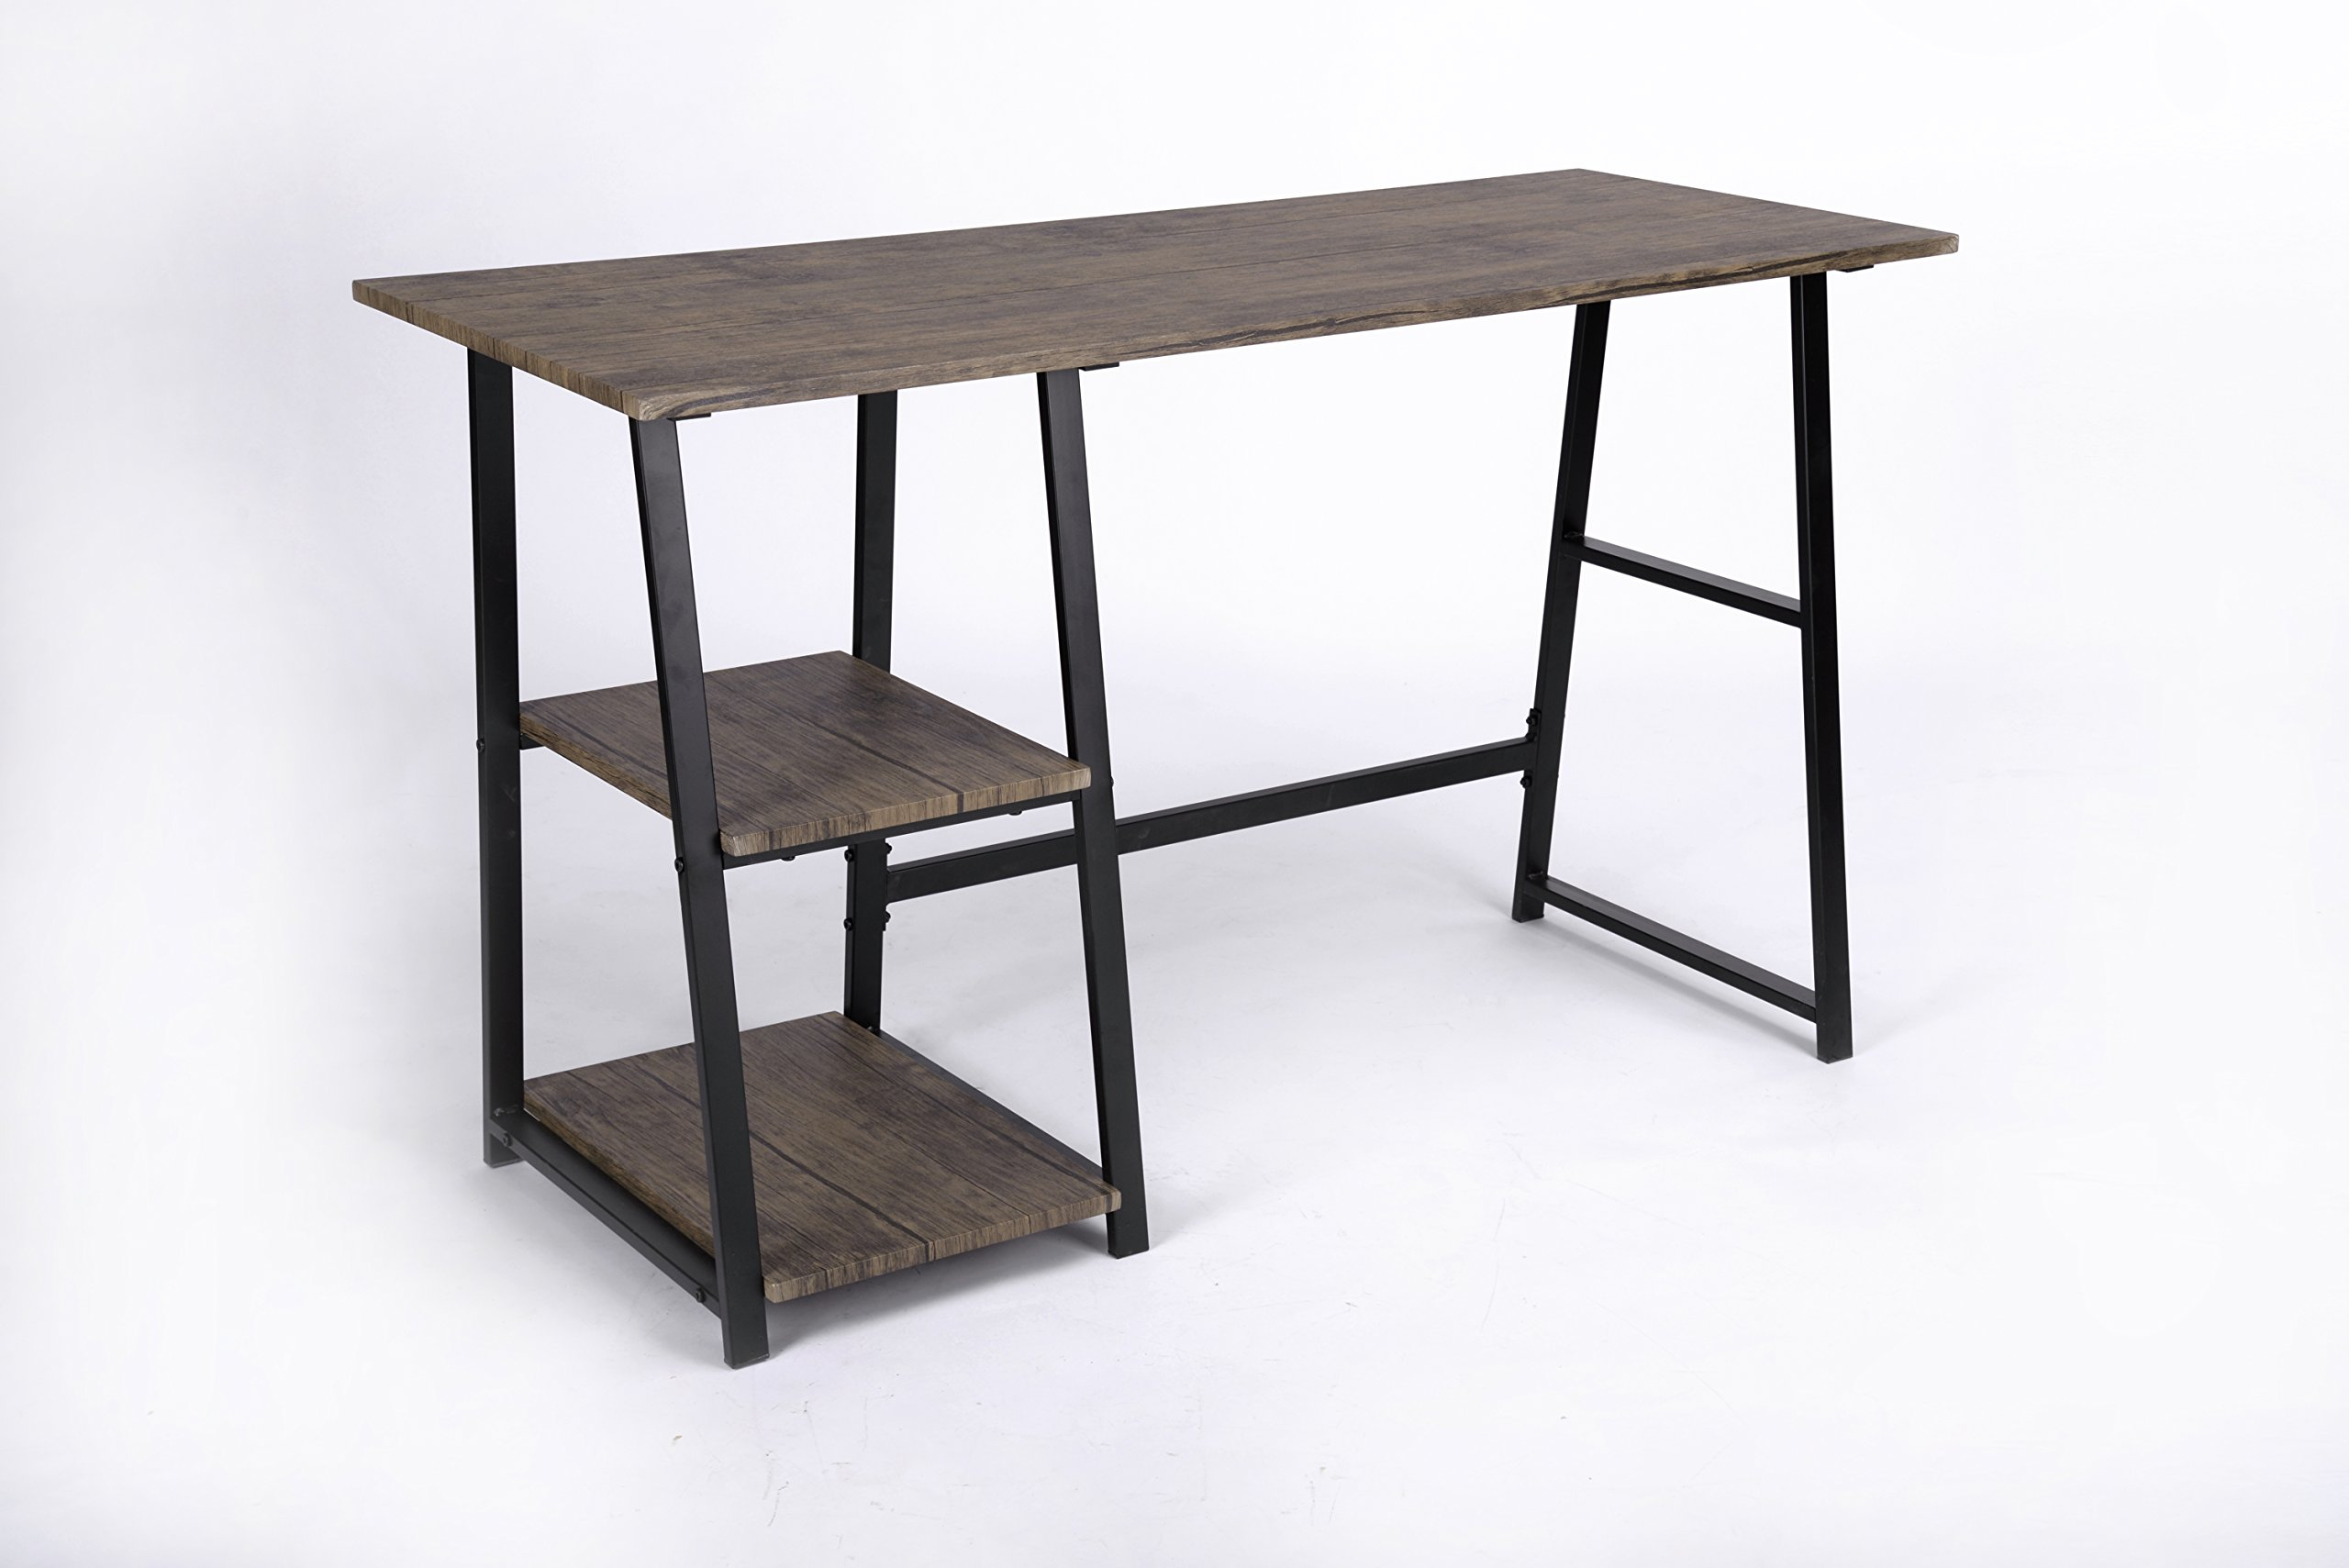 Vintage Brown Finish Computer Writing Study Trestle Desk Modern Vintage Home Office by eHomeProducts (Image #2)